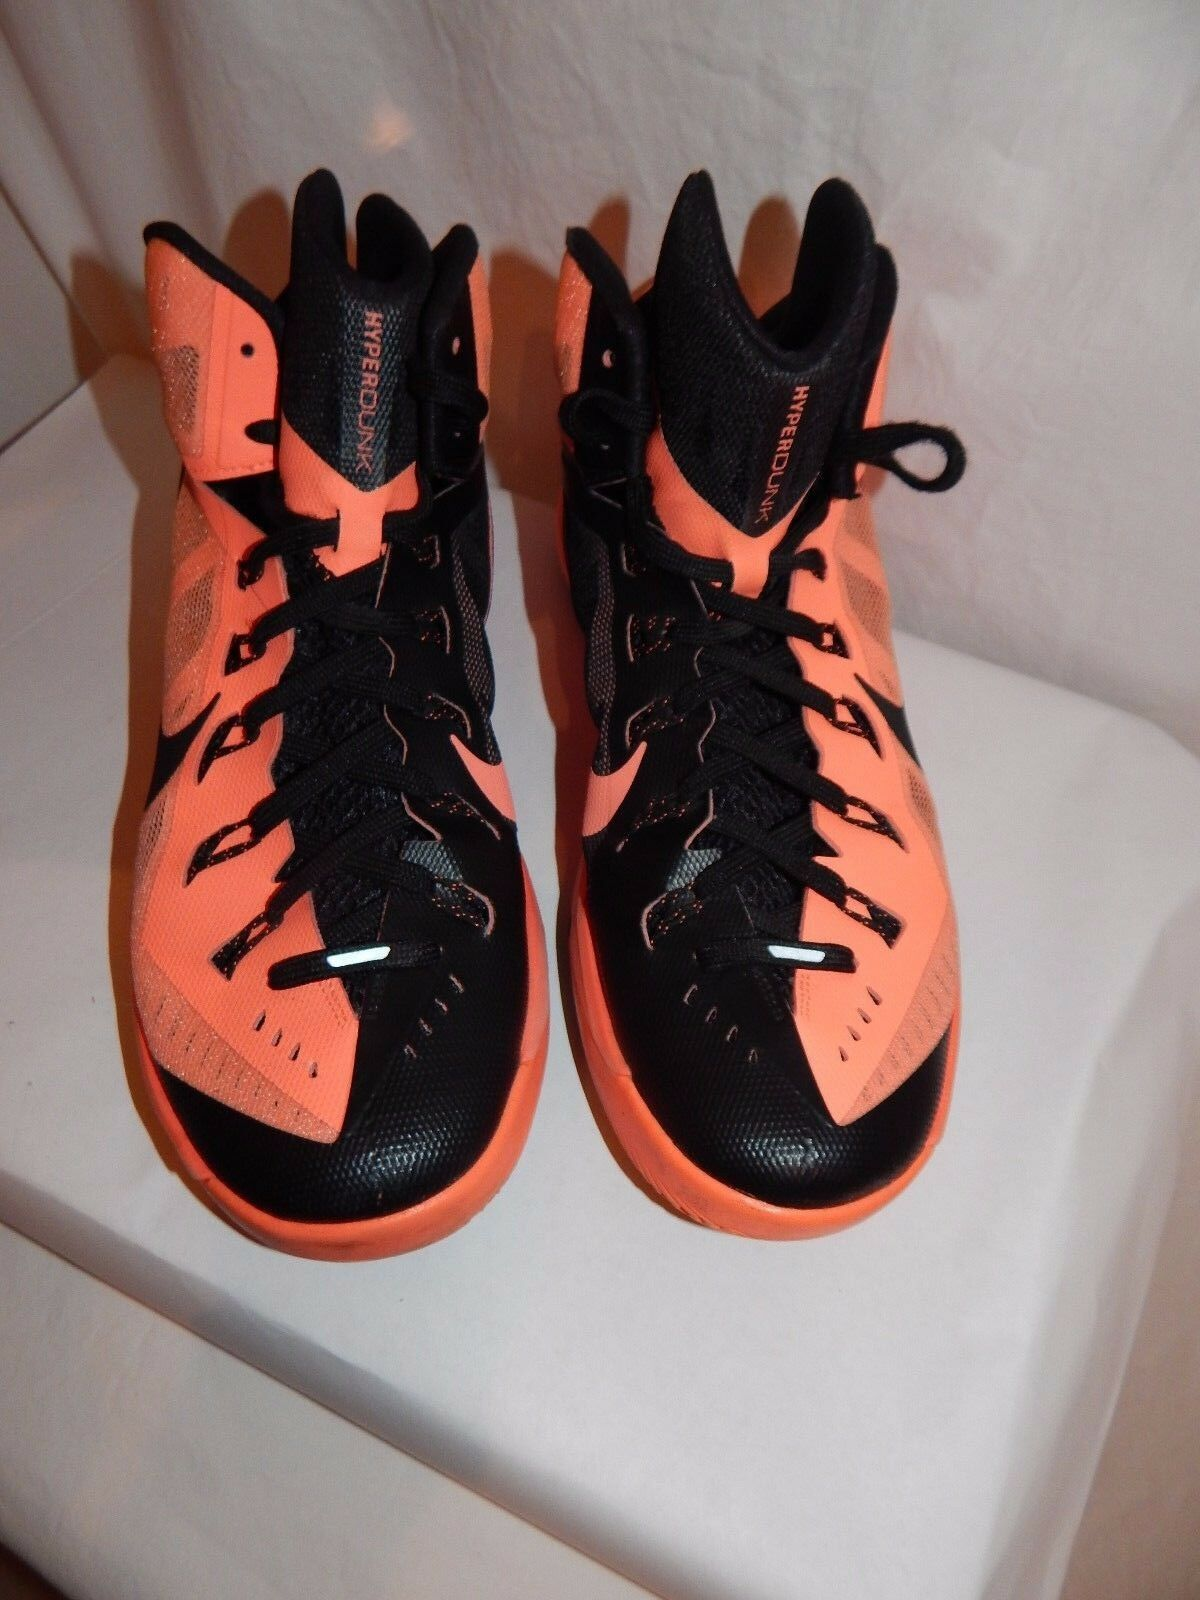 2014 Nike Sz 11.5 Men's Hyperdunk Basketball Shoe 653640-800 Mango/Black